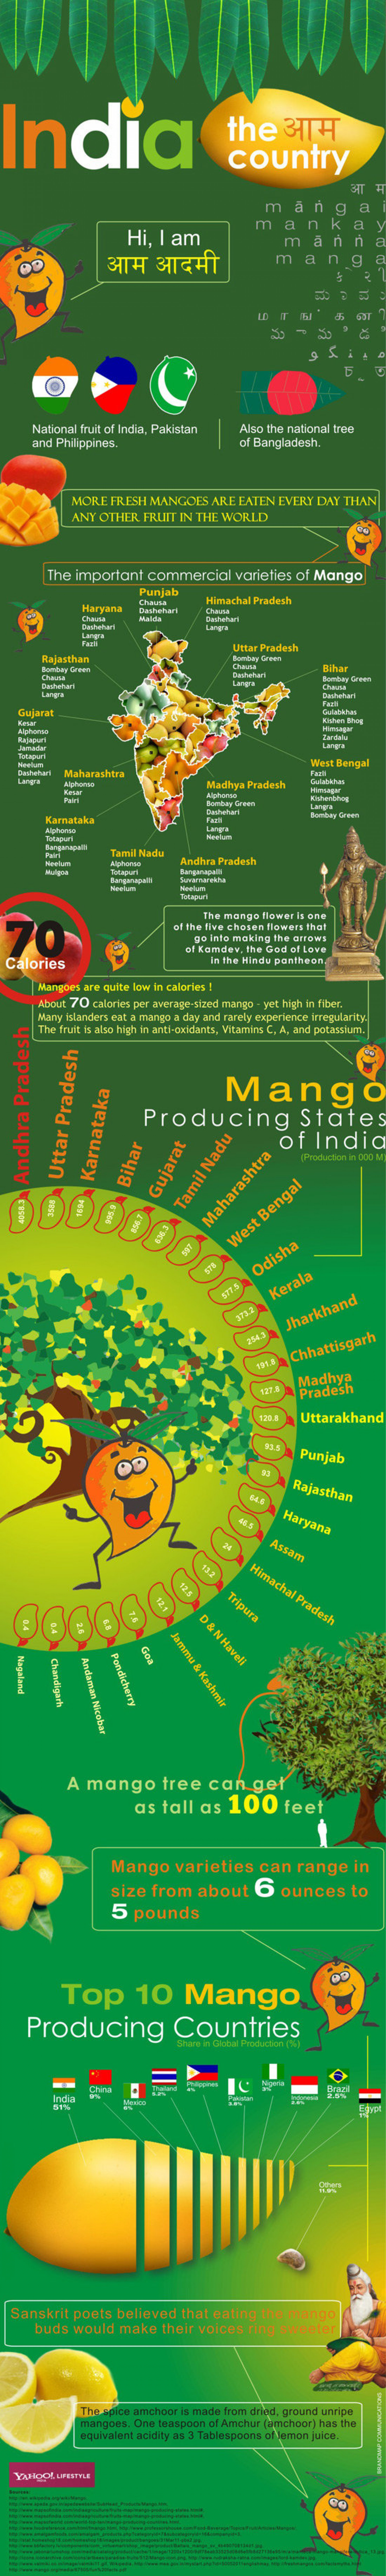 Mango map of India Infographic